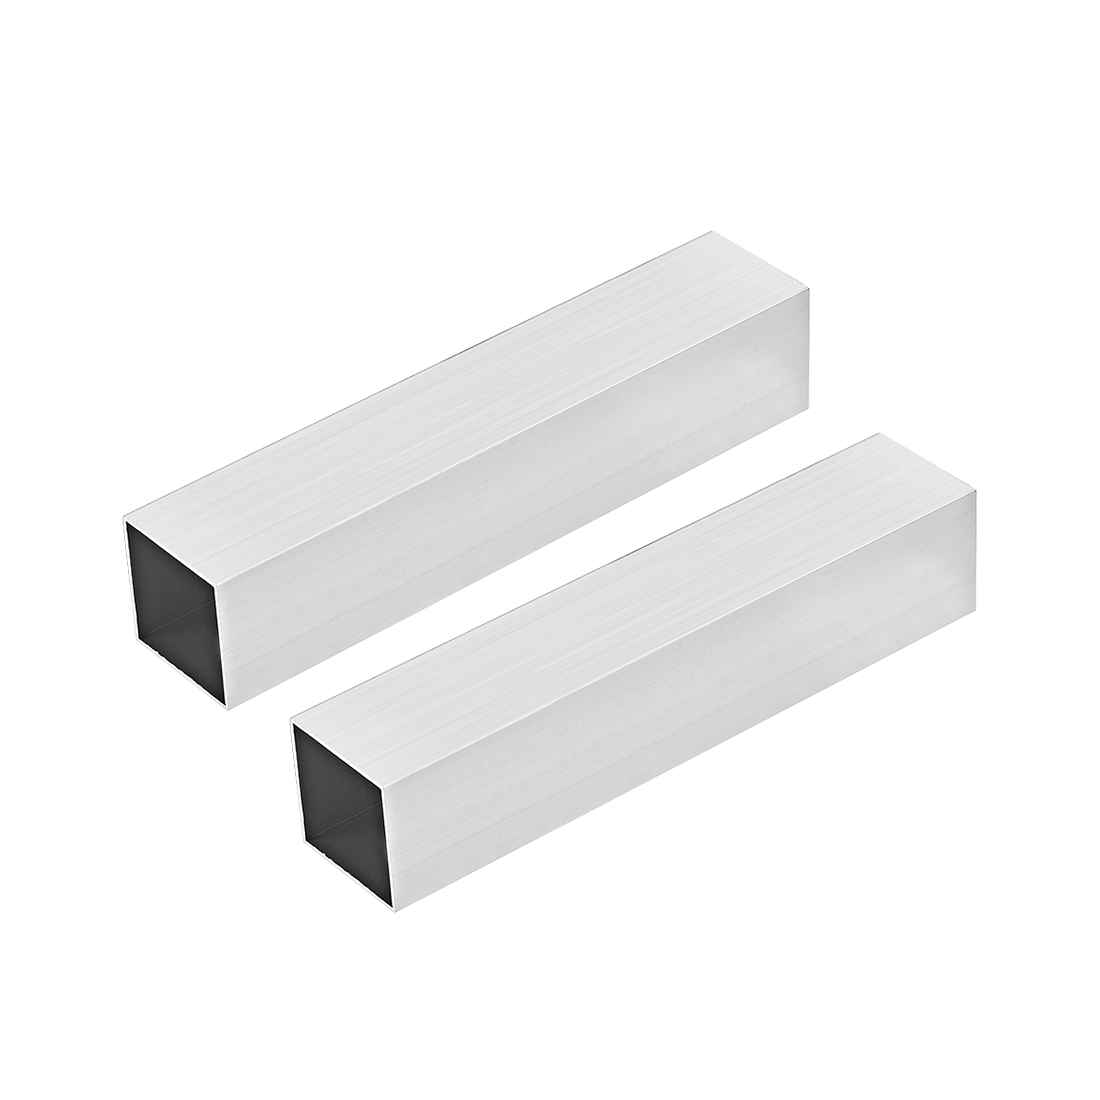 6063 Aluminum Square Tube 40mmx40mmx1mm Wall Thickness 200mm Length Tubing 2 Pcs